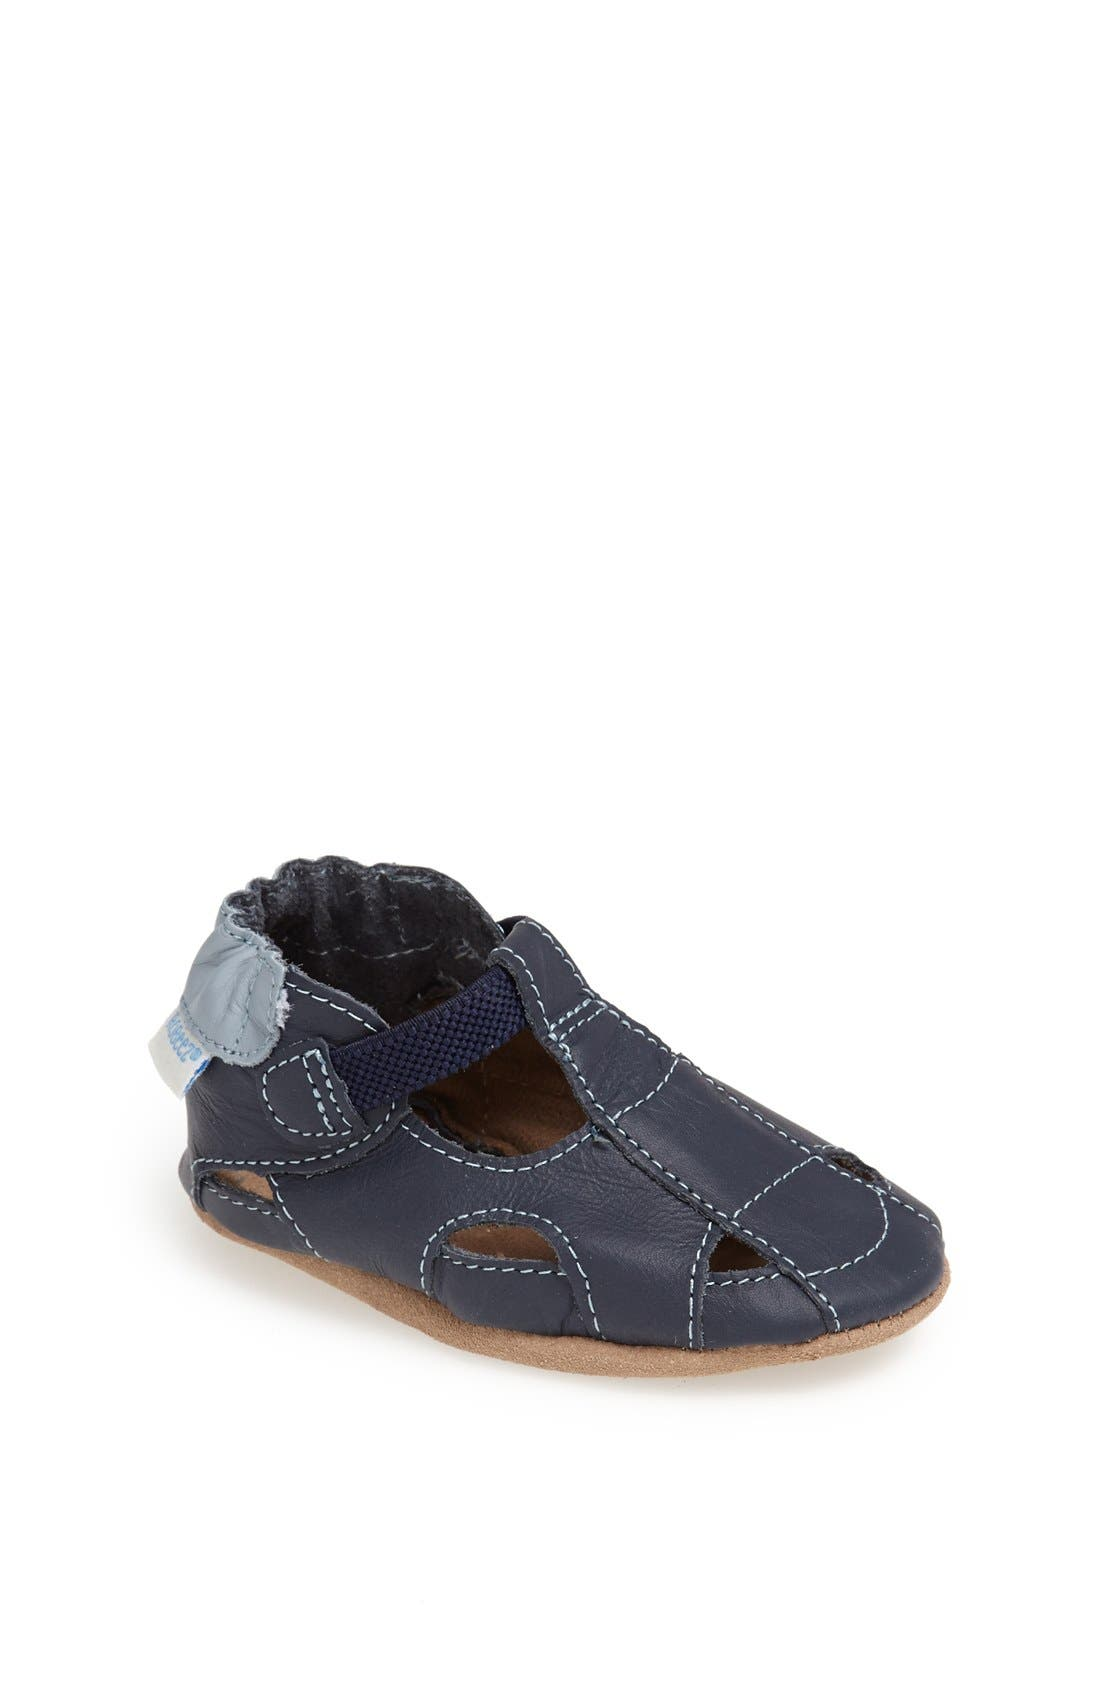 Fisherman Sandal,                         Main,                         color, Navy